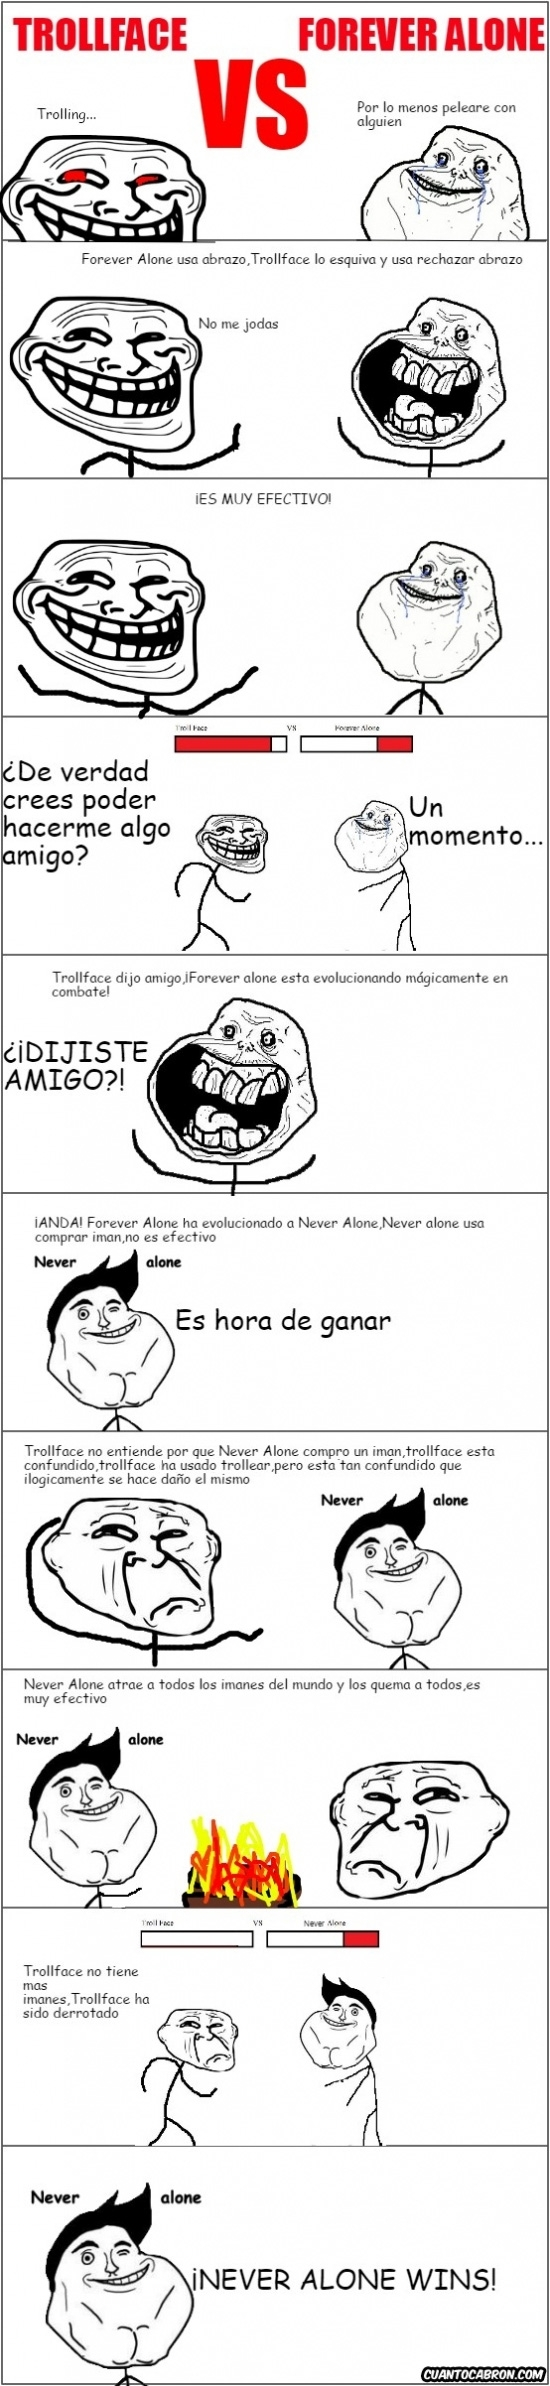 Forever_alone - Combate entre Trollface y Forever Alone de final impredecible